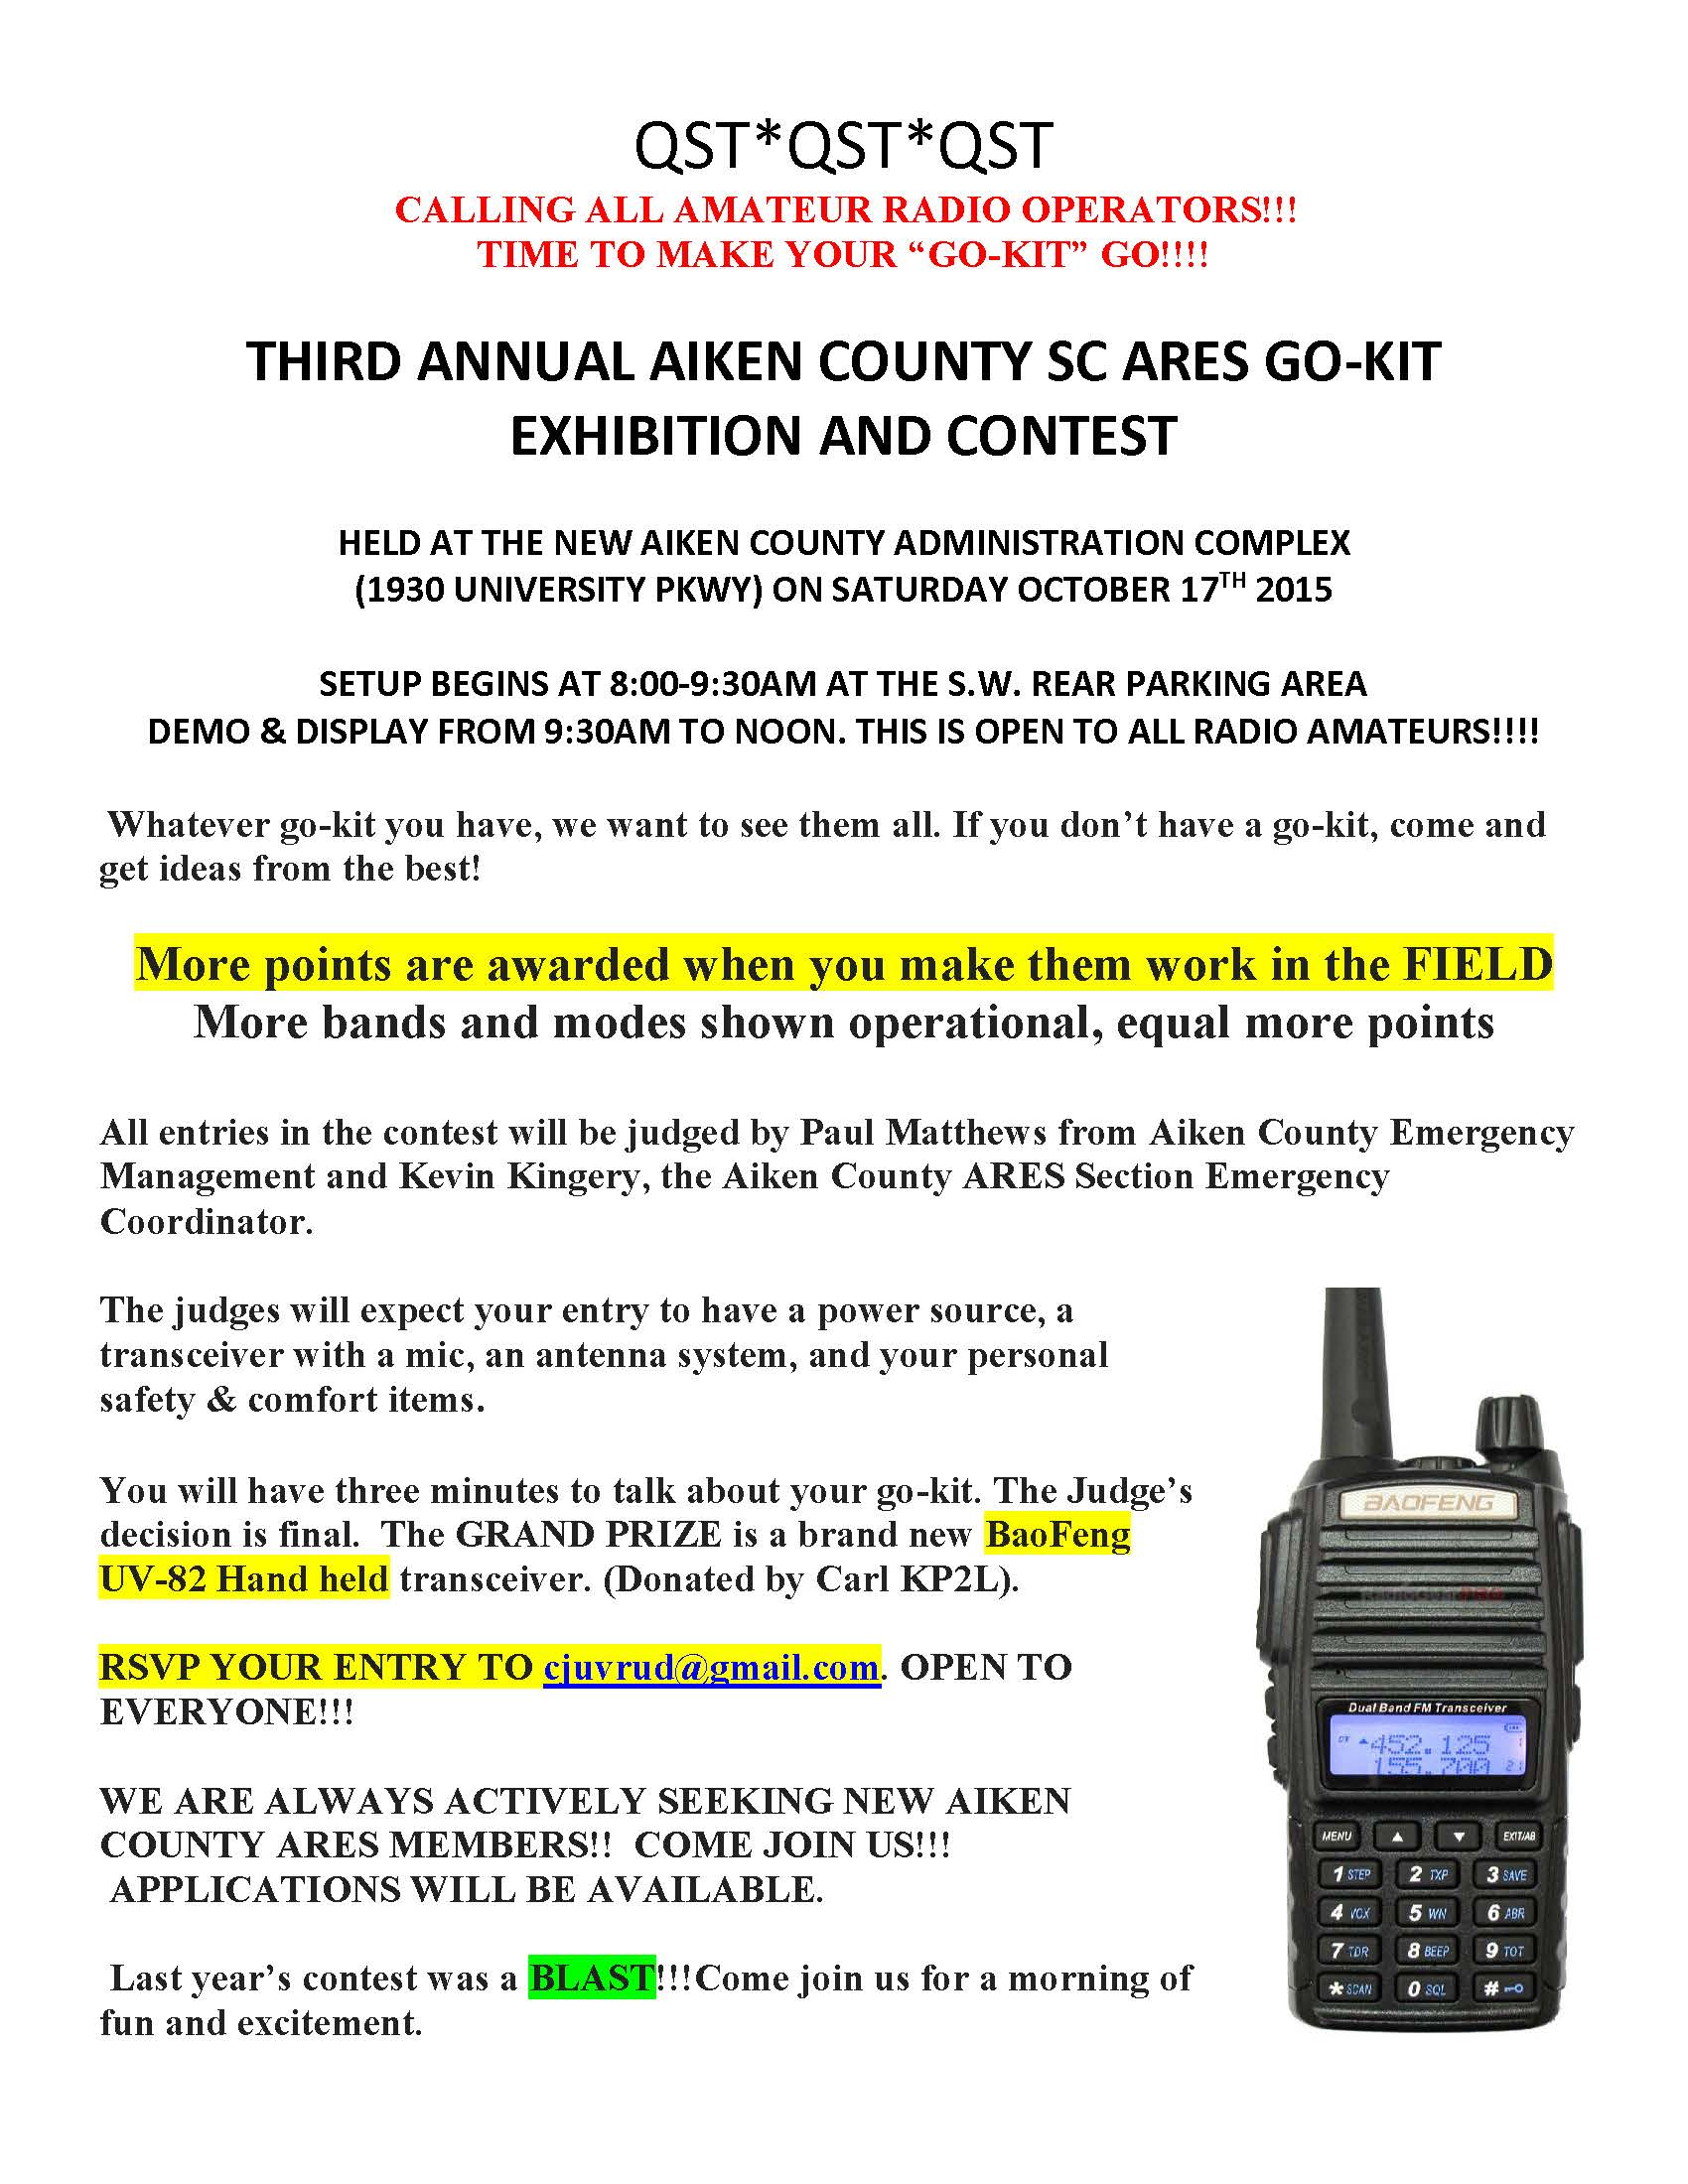 Third Annual Aiken County, SC ARES Go-Kit Exhibition and Contest 10-17-2015